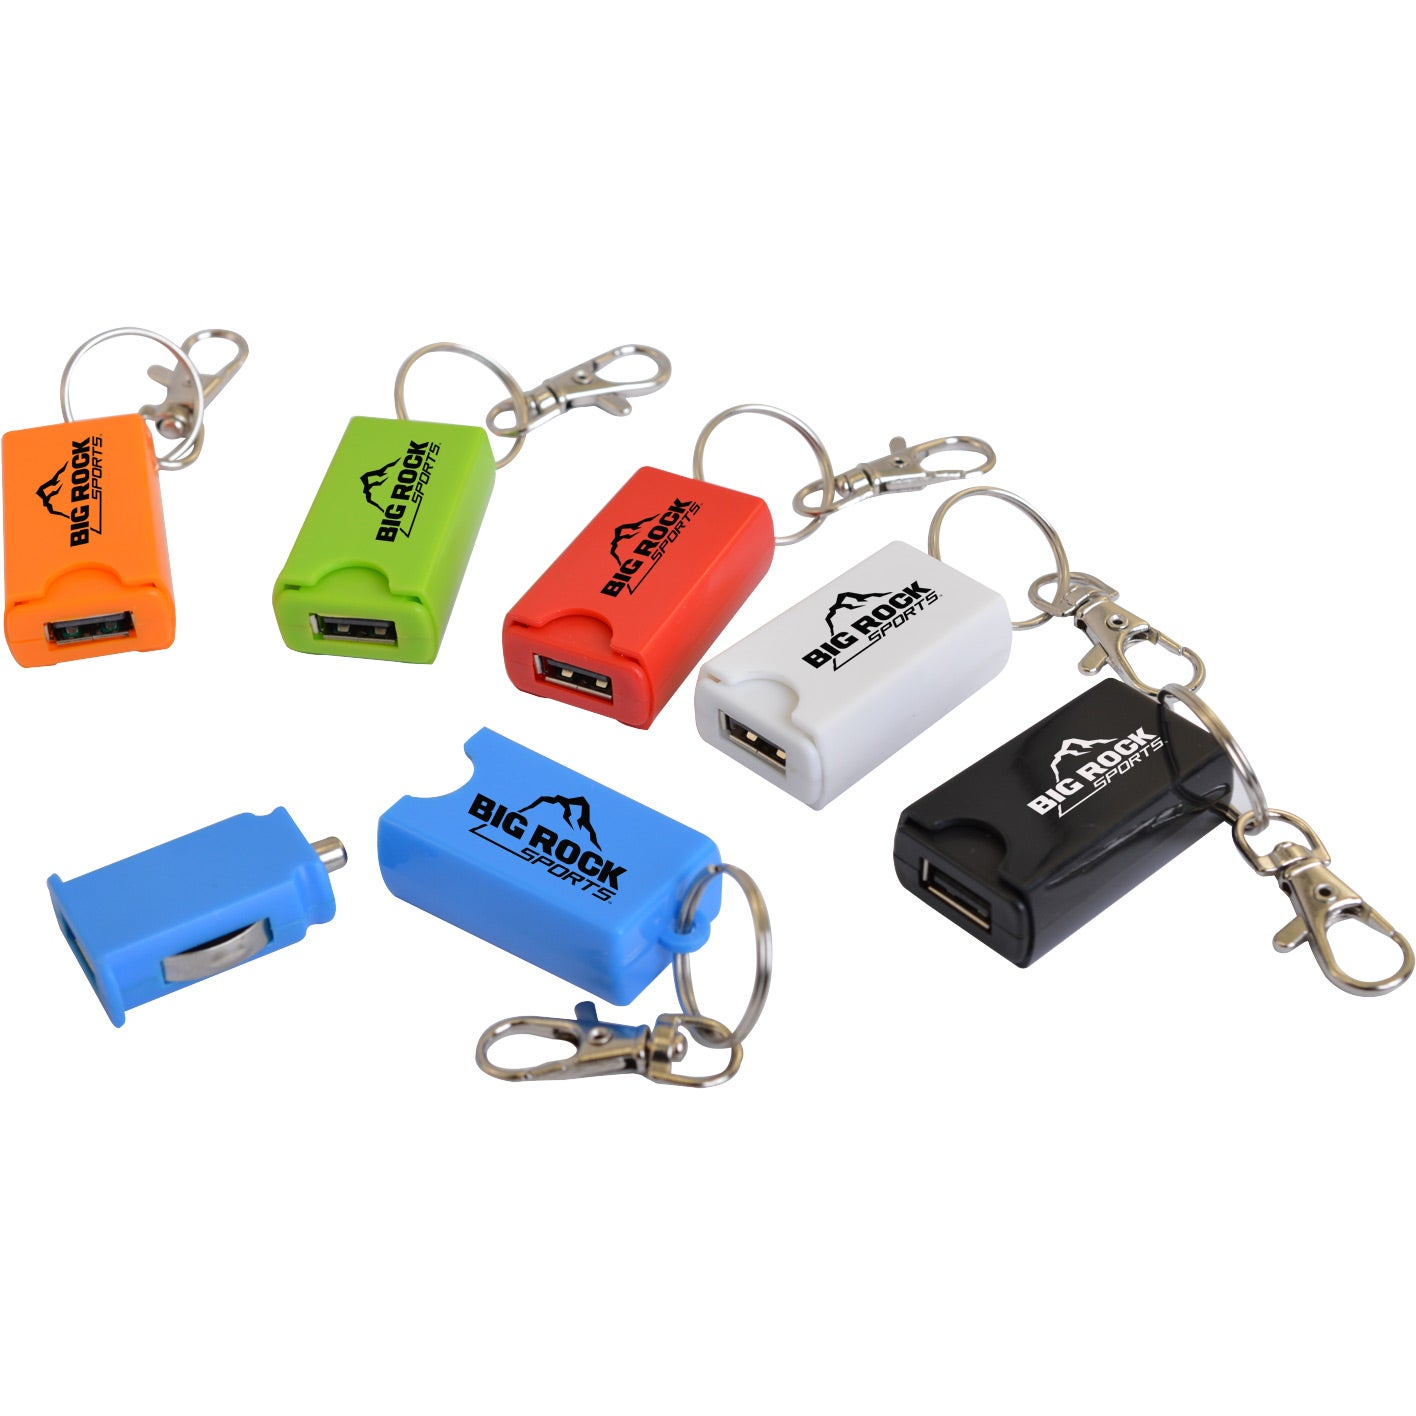 Colored usb car charger - Group Photo Usb Car Charger On A Keychain